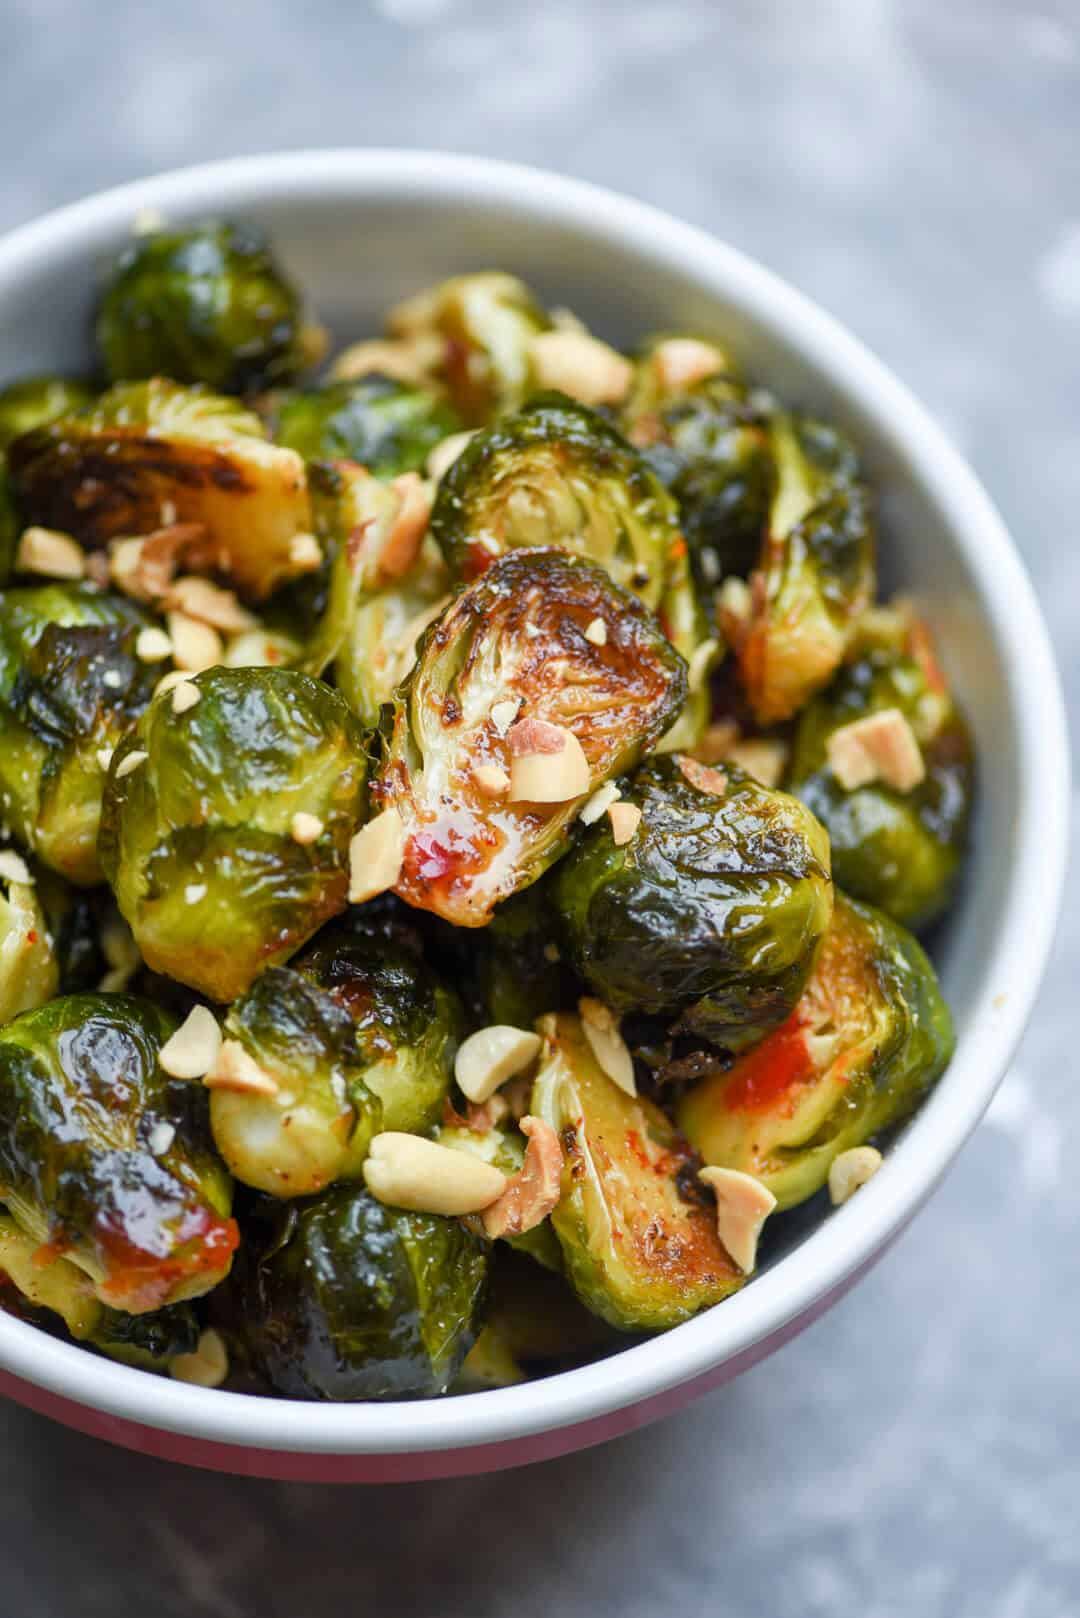 A close up of the Sweet Chili Garlic Brussels Sprouts topped with peanuts.